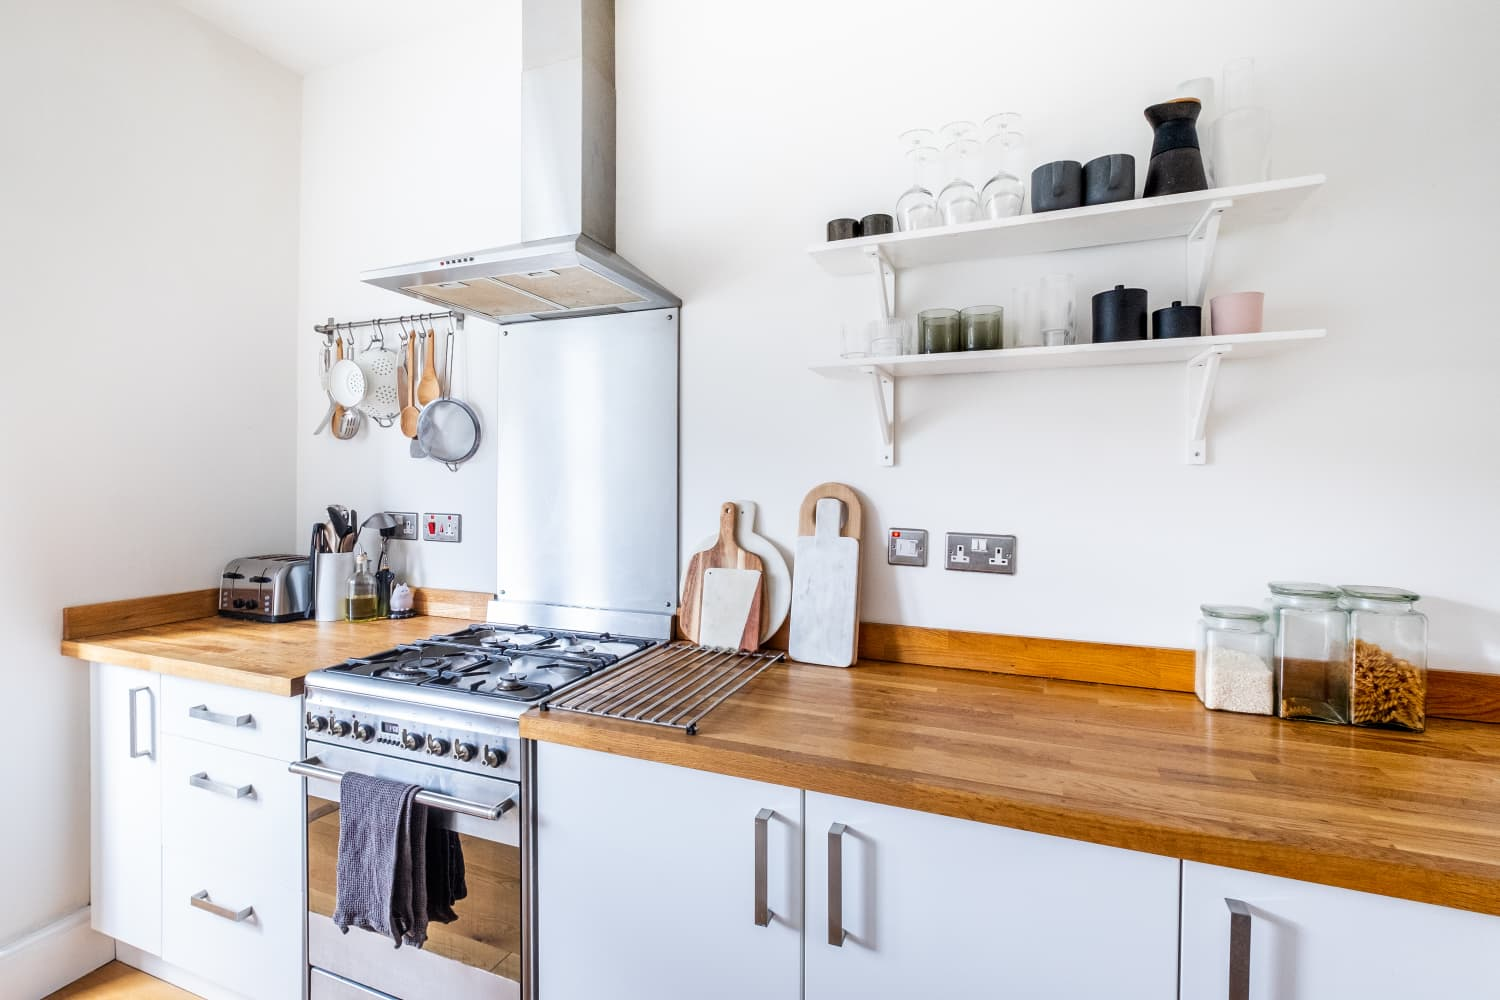 5 Things People with Perpetually Clean Kitchens Always Do